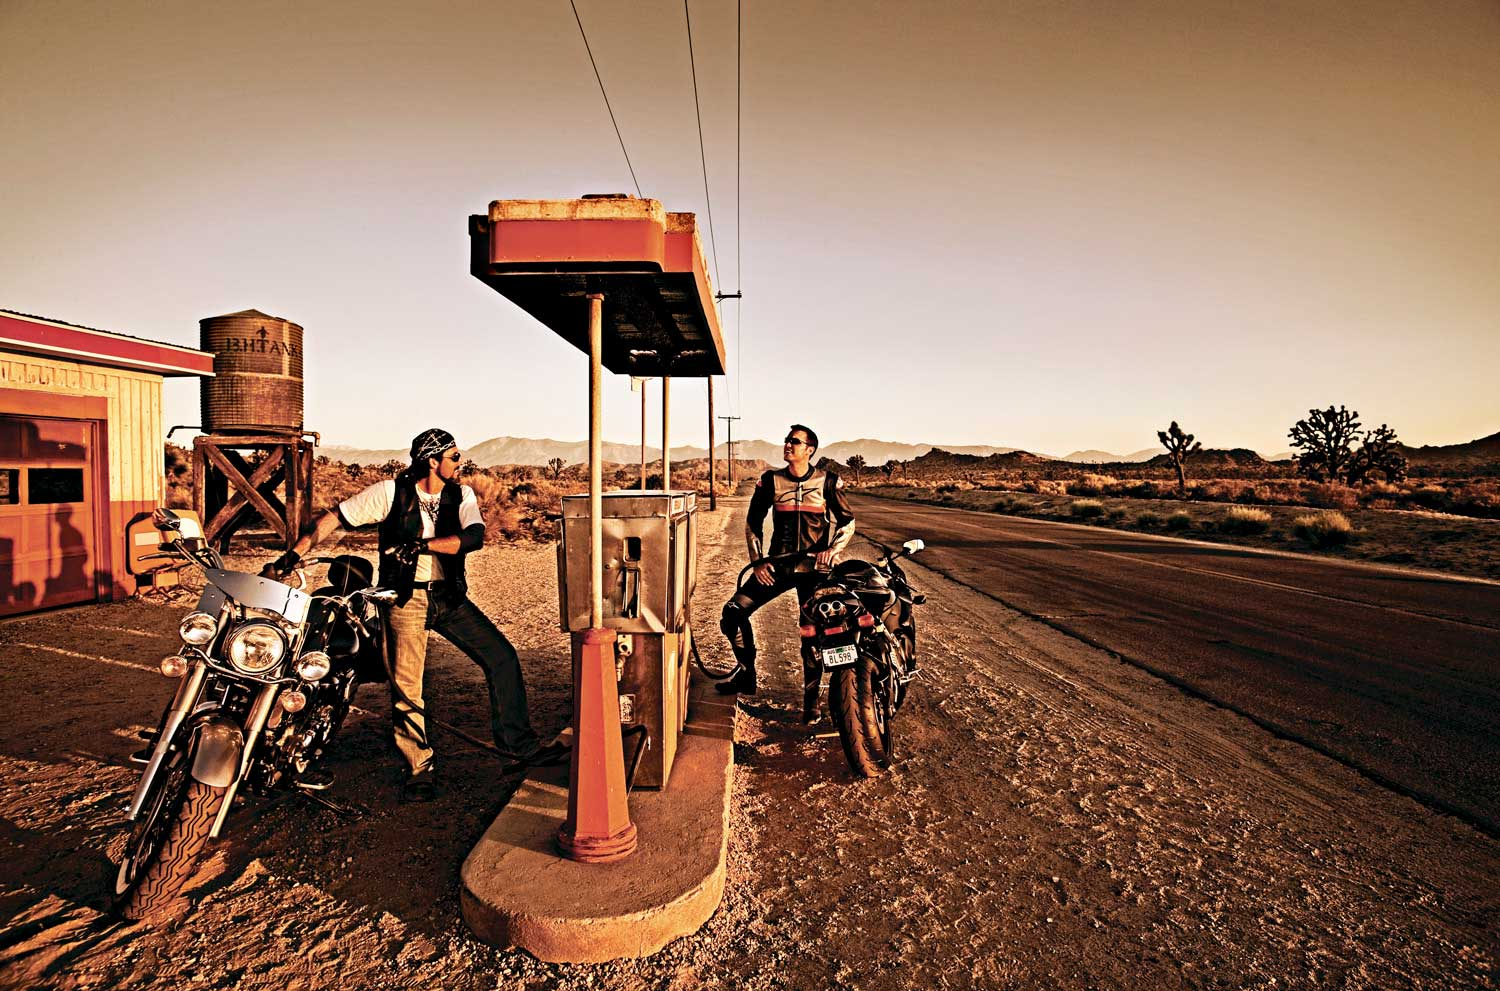 Skoal_Bikers at desert filing station